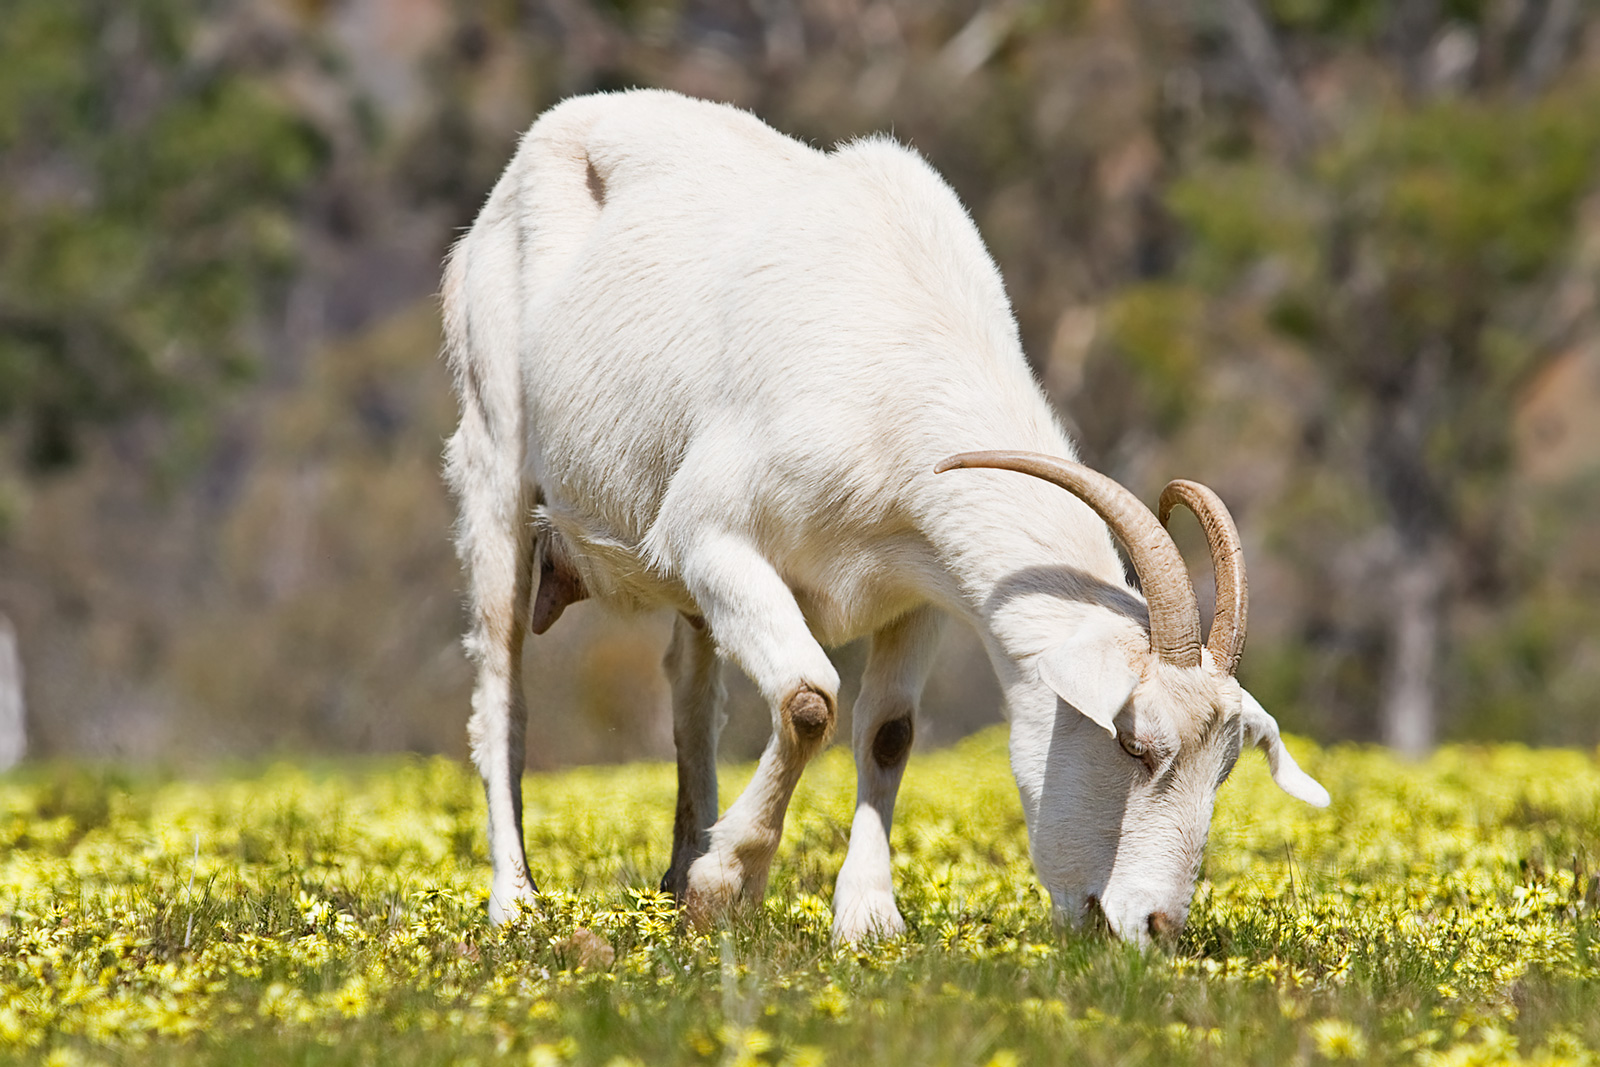 a goat Define goat: any of various hollow-horned ruminant mammals (especially of the genus capra) related to the sheep but of lighter — goat in a sentence.